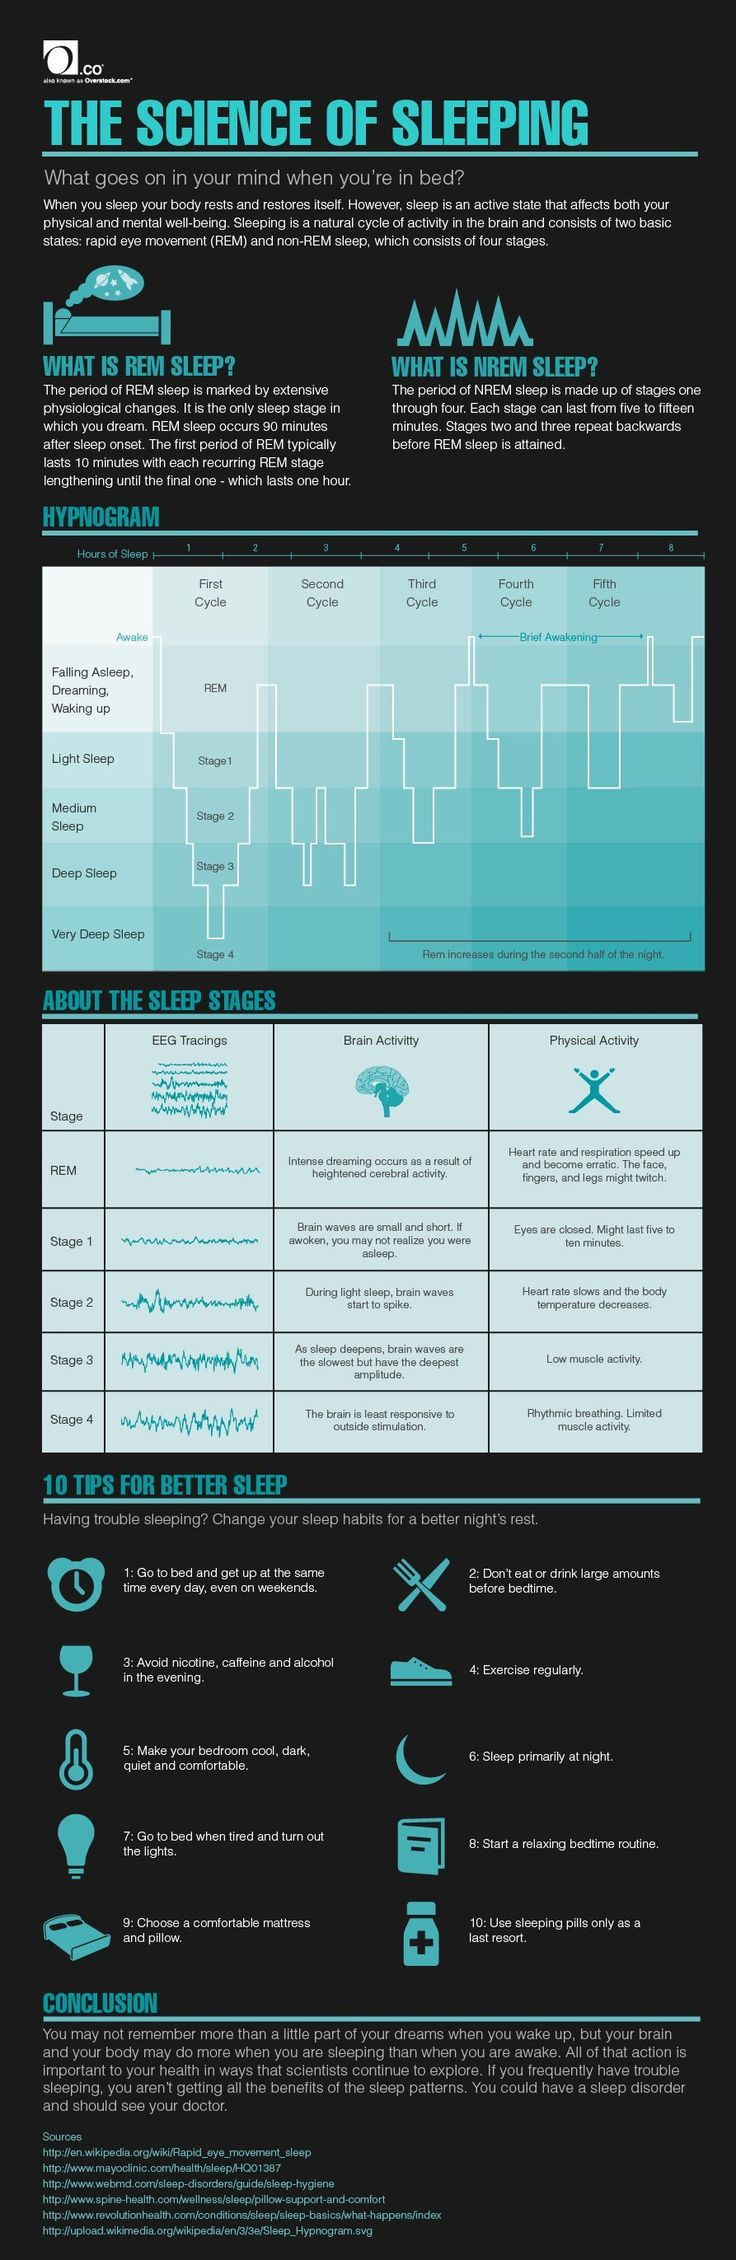 The Science of Sleeping Infographic-- This infographic is about the different stages of sleep and how the body reacts to each stage. It also touches on REM sleep, and what it does to the body.